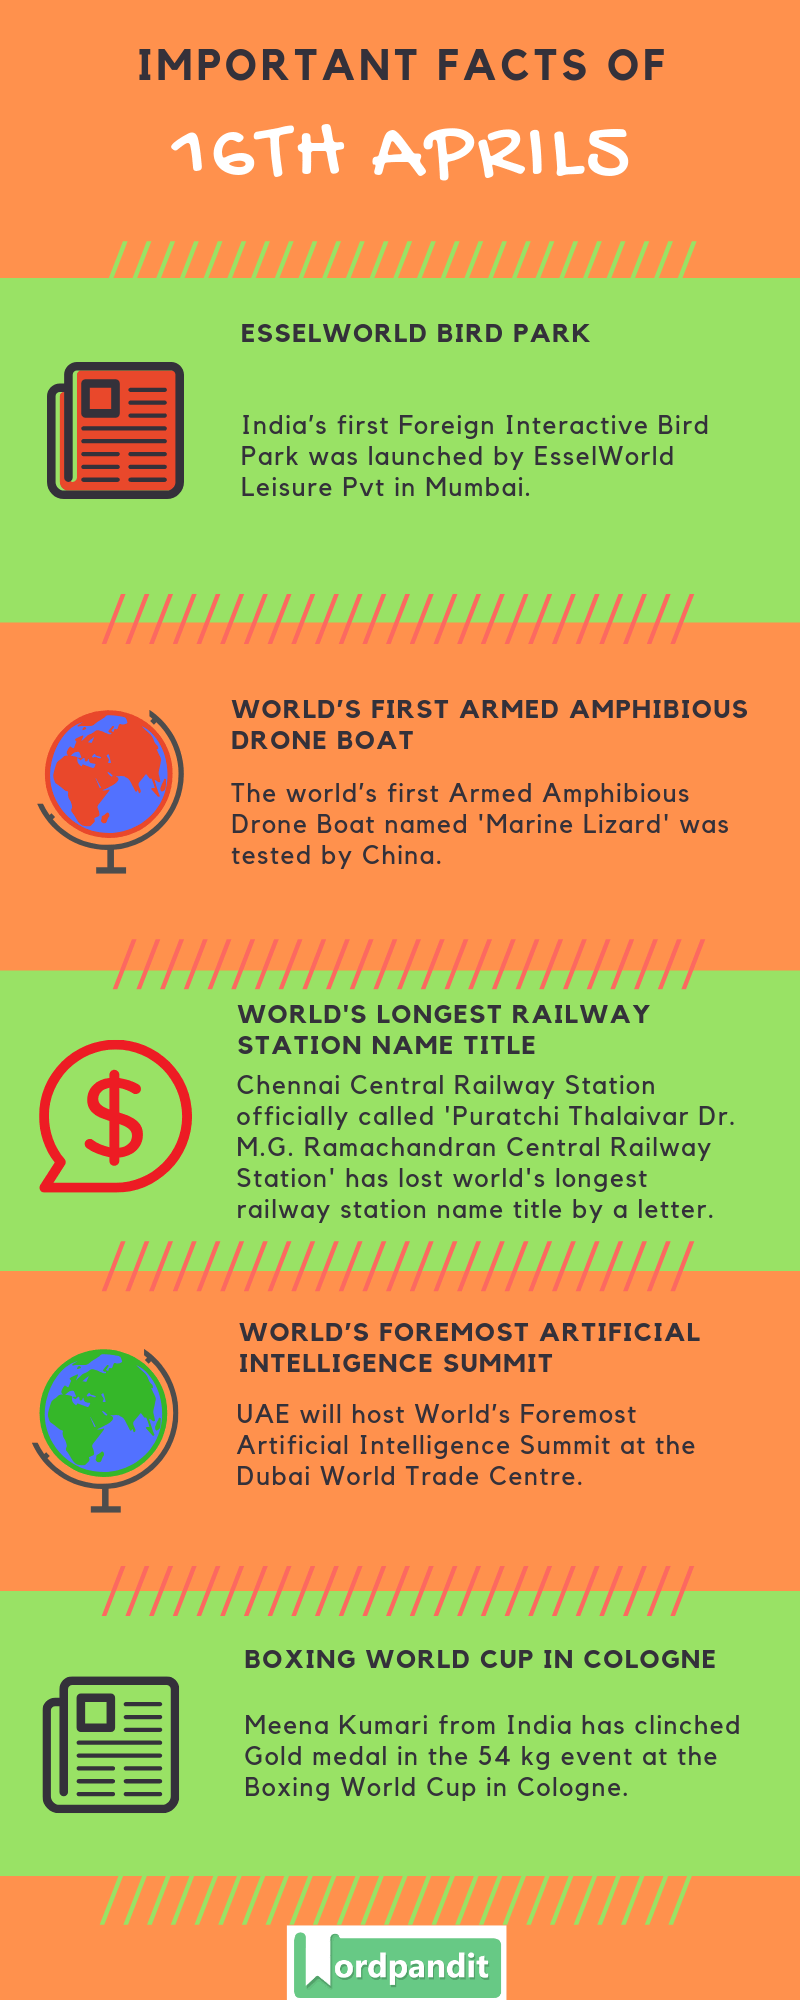 Daily Current Affairs 16 April 2019 Current Affairs Quiz 16 April 2019 Current Affairs Infographic